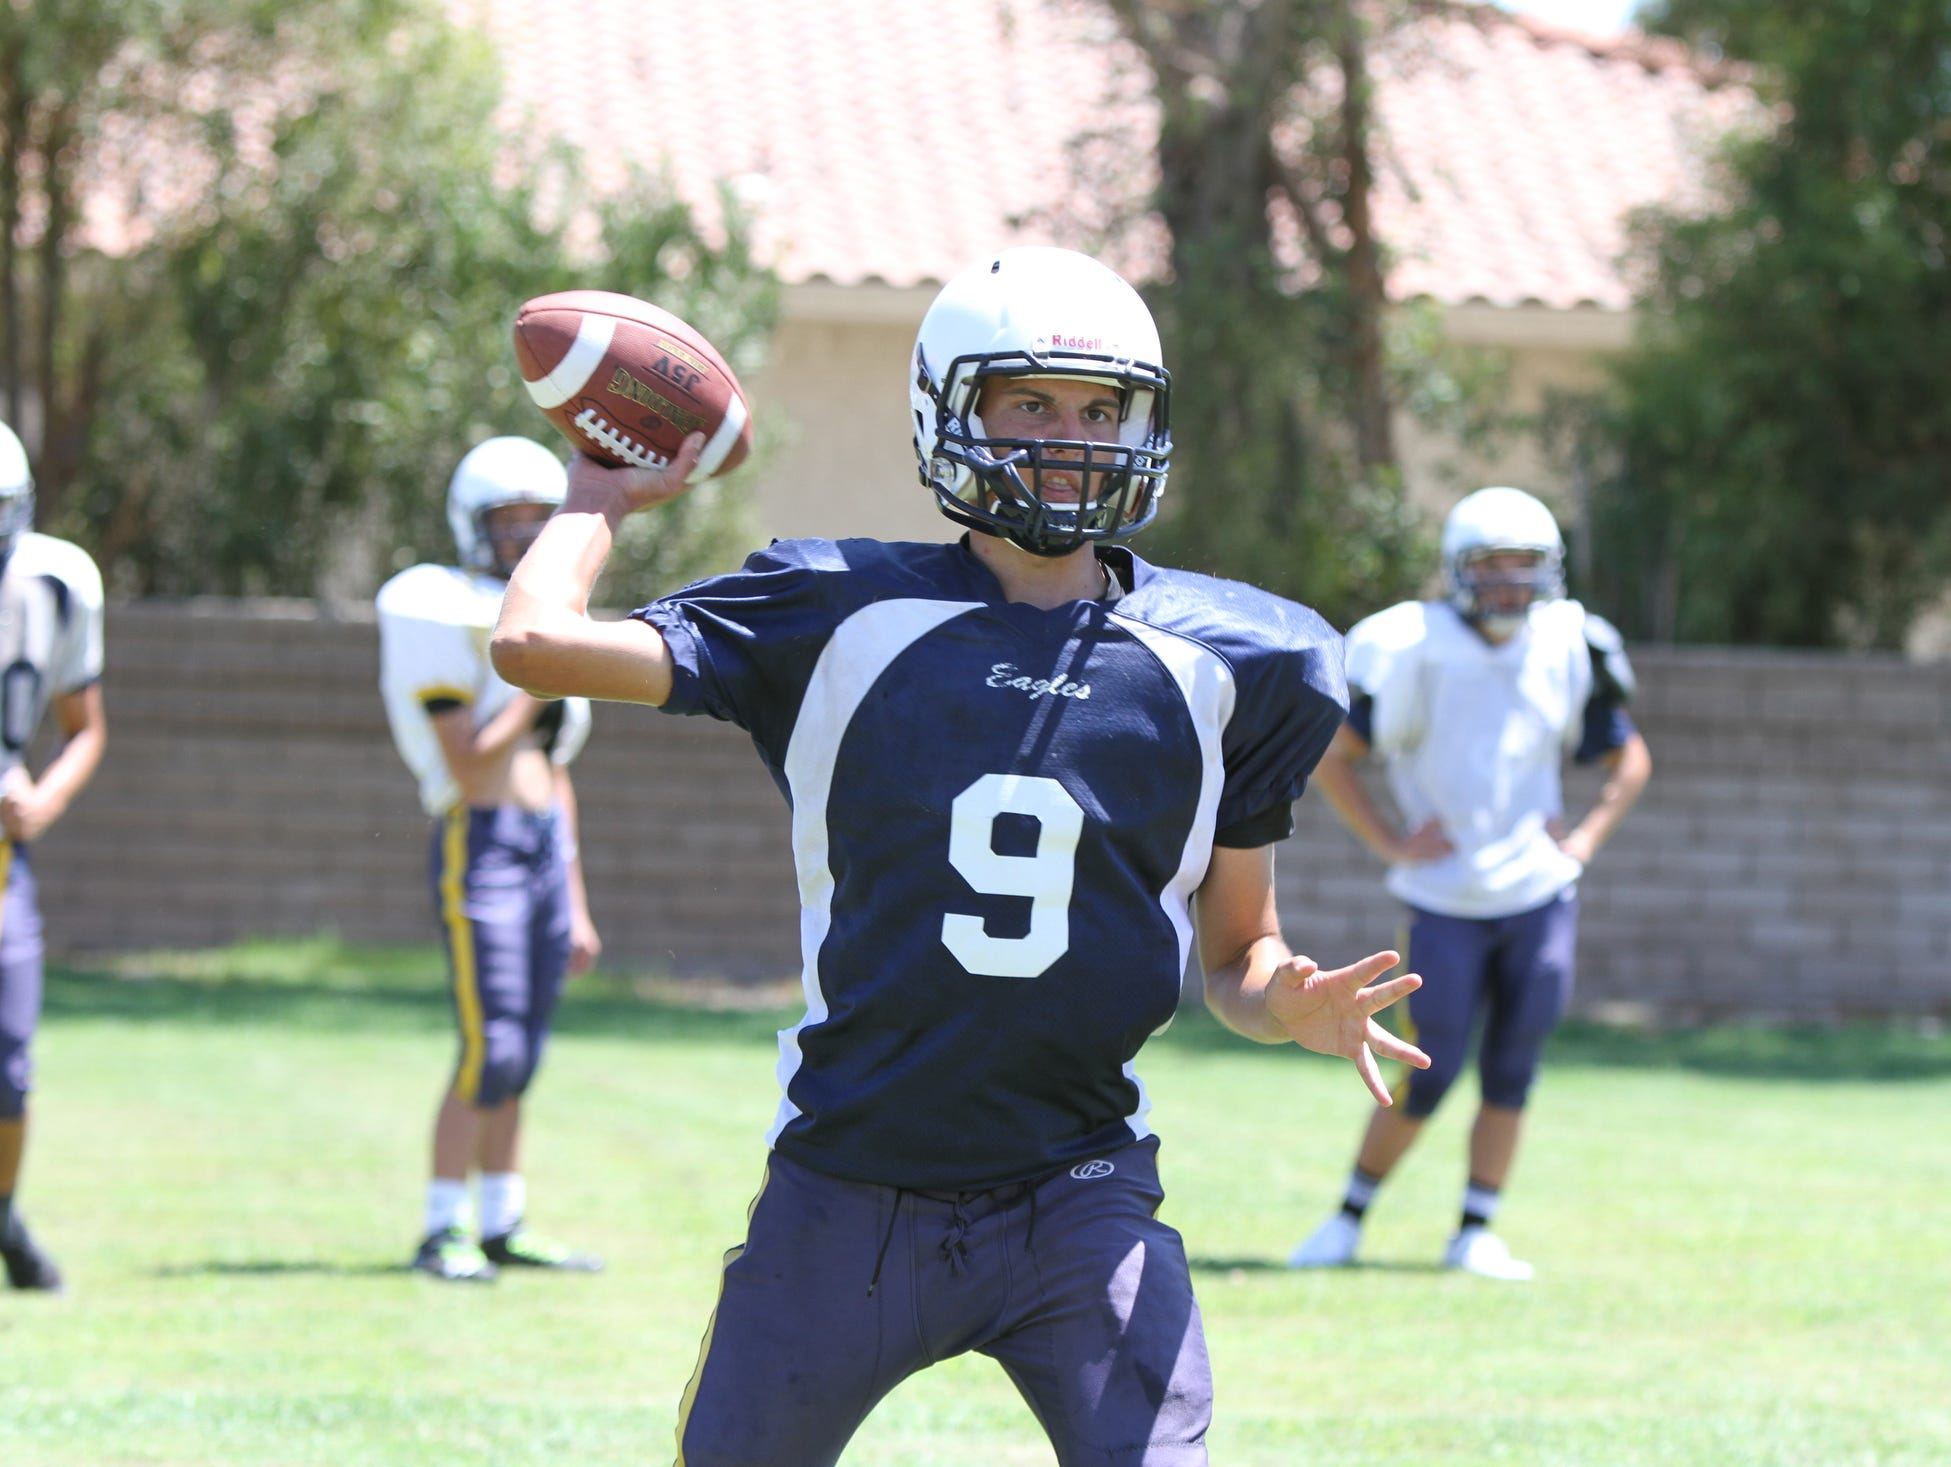 Desert Chapel's Joey Spoelder throws the ball during practice at the school in Palm Springs on Wednesday, August 17, 2016.